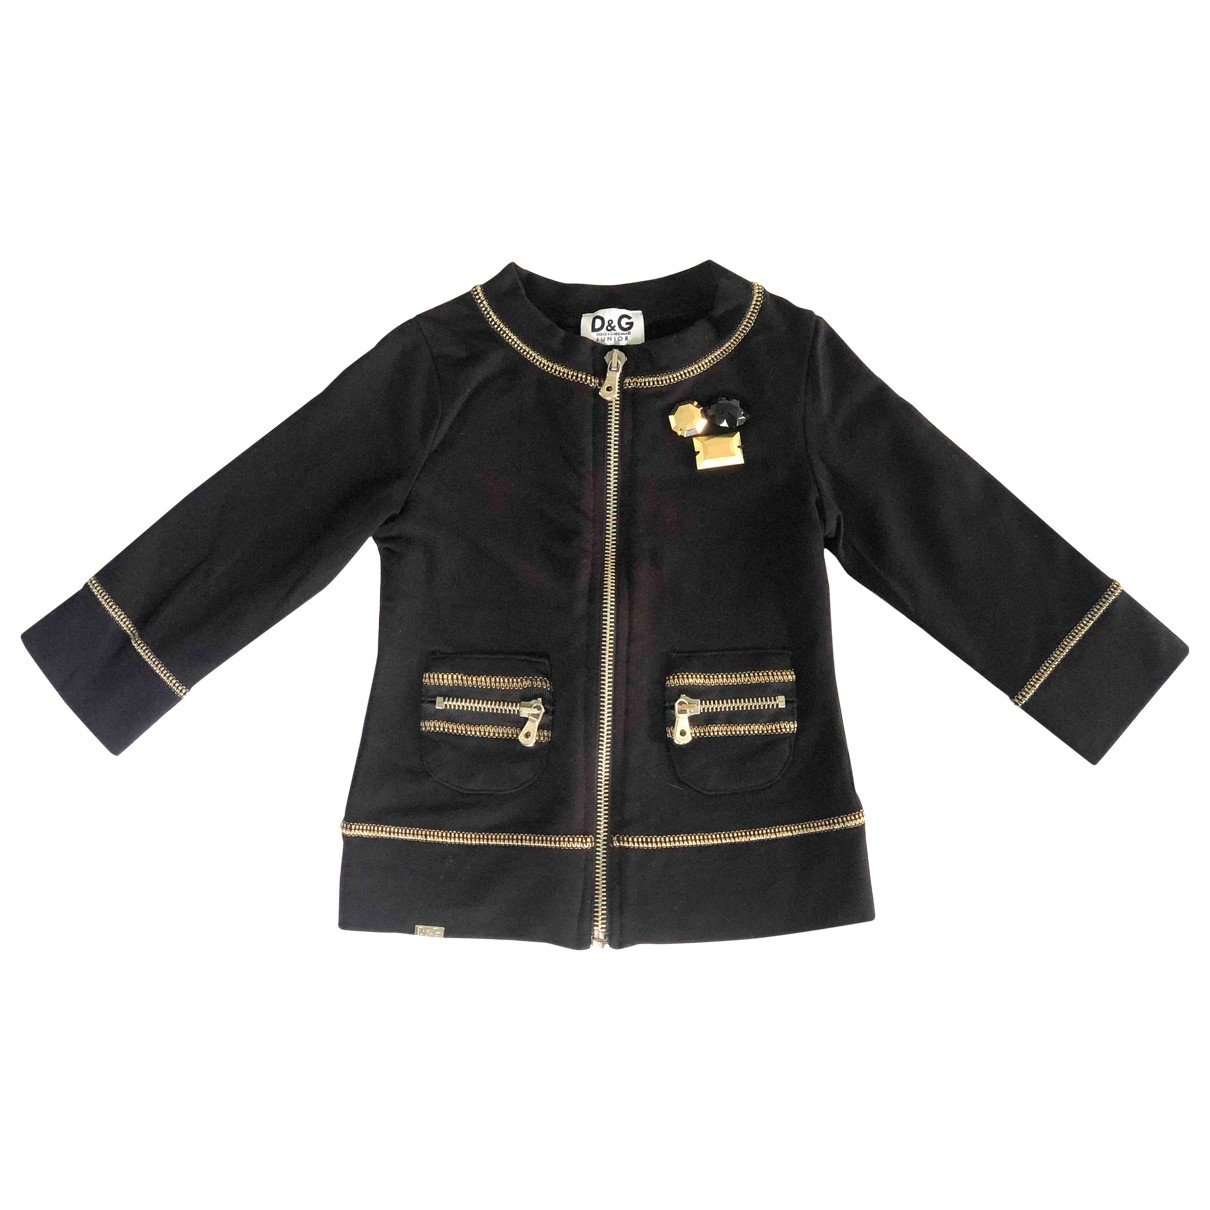 D&g \N Blue Cotton jacket & coat for Kids 2 years - up to 86cm FR